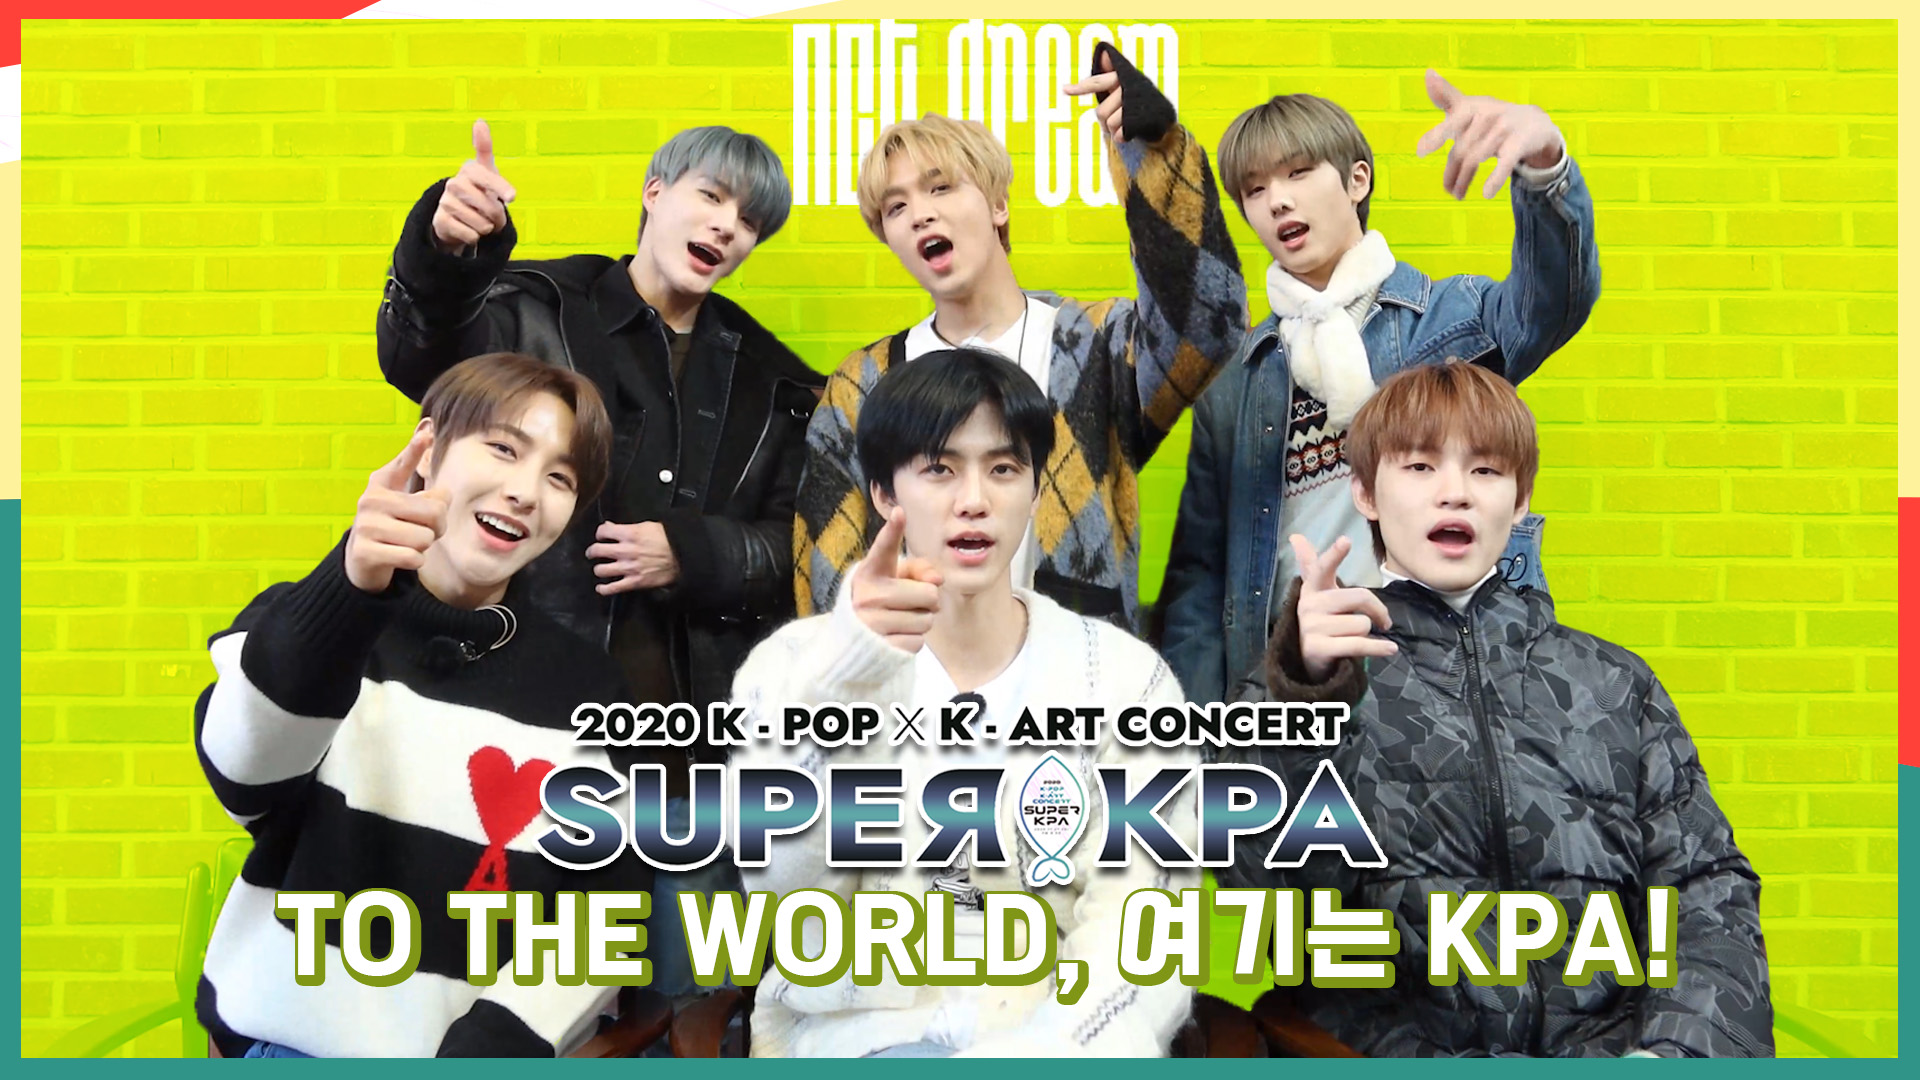 [비욘드 라이브-2020 K-POP x K-ART 콘서트 SUPER KPA] - NCT DREAM